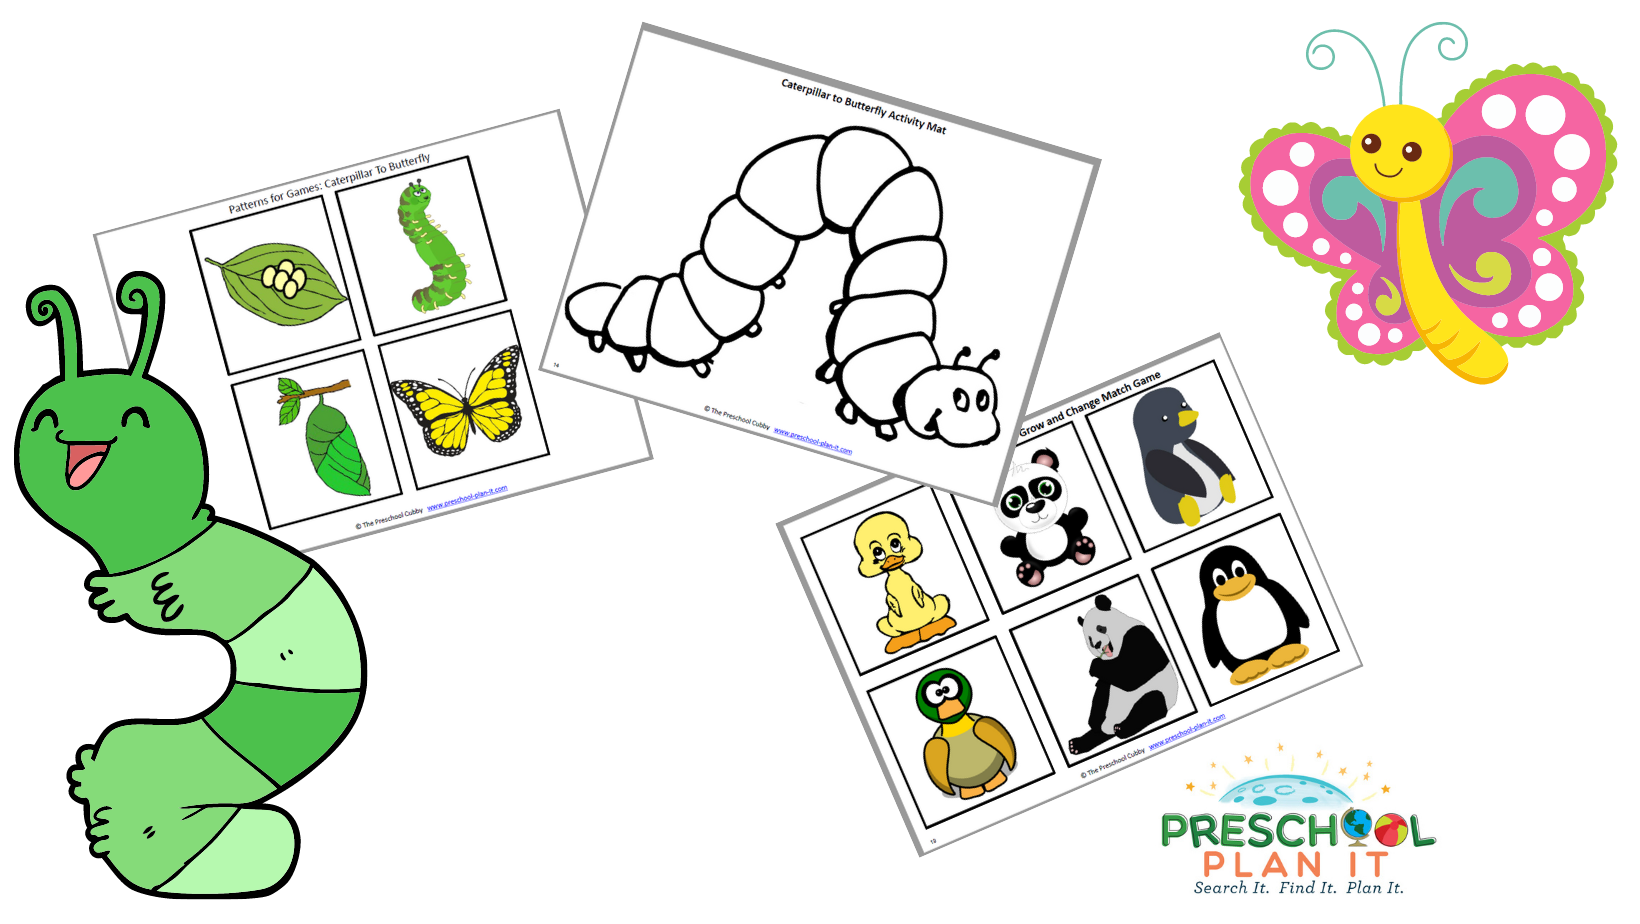 A 29 page Caterpillars and Butterflies Preschool Theme resource packet to help save you planning time!